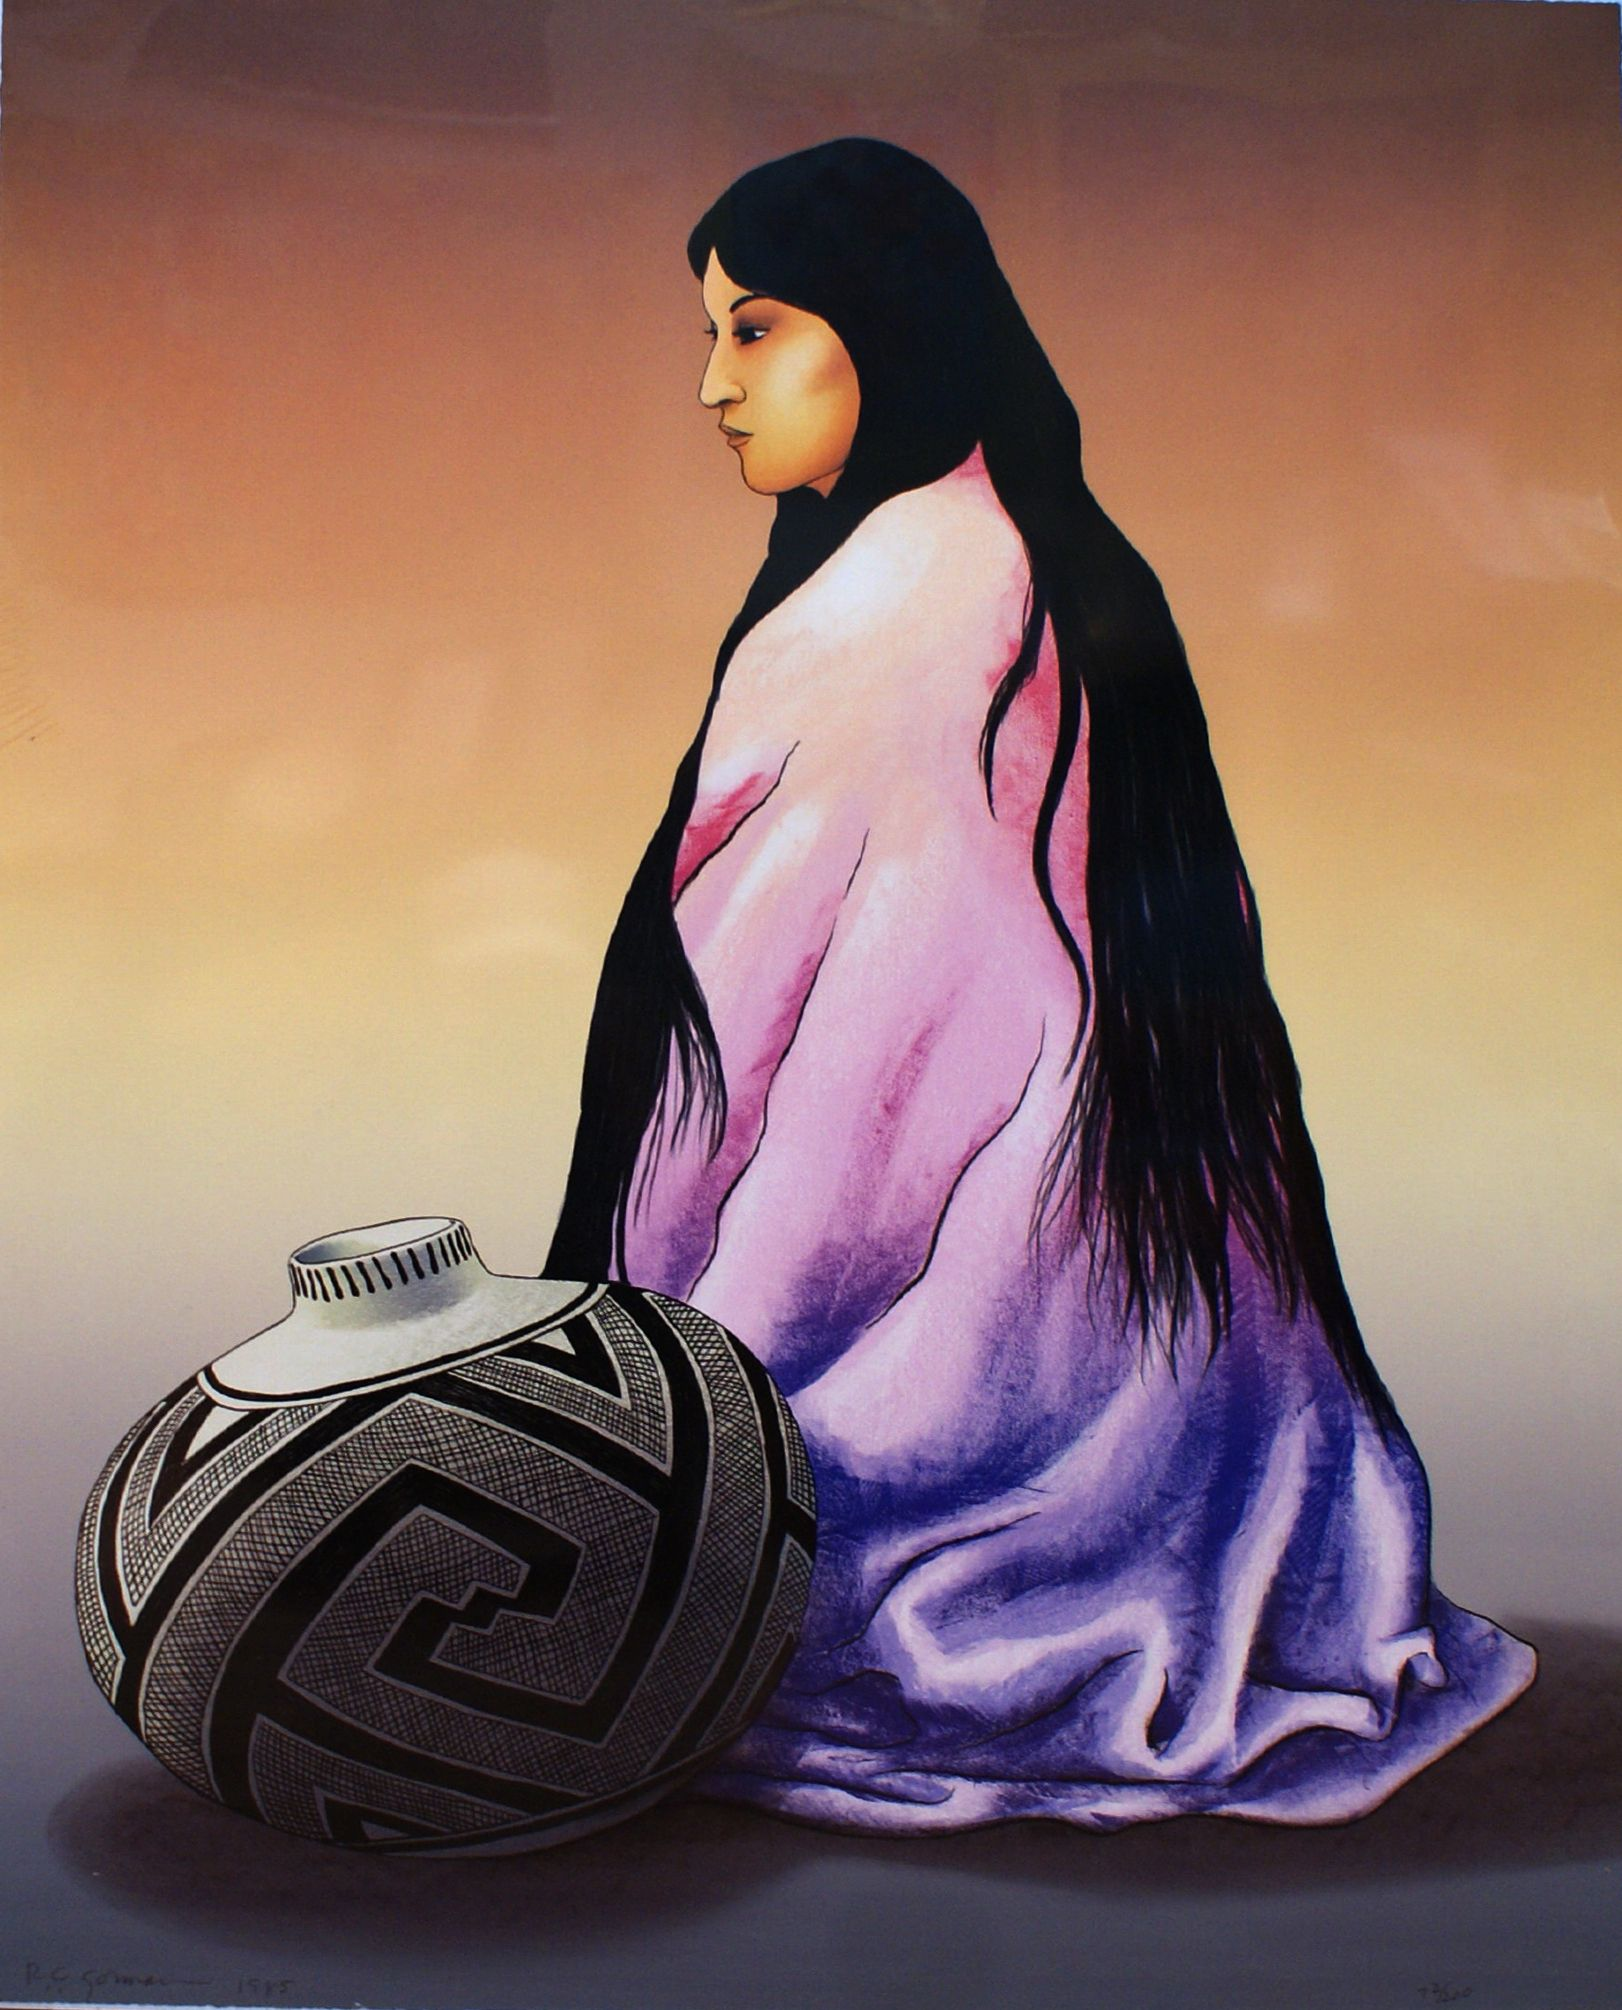 Rc gorman r c gorman artist pinterest native americans rc gorman dailygadgetfo Image collections